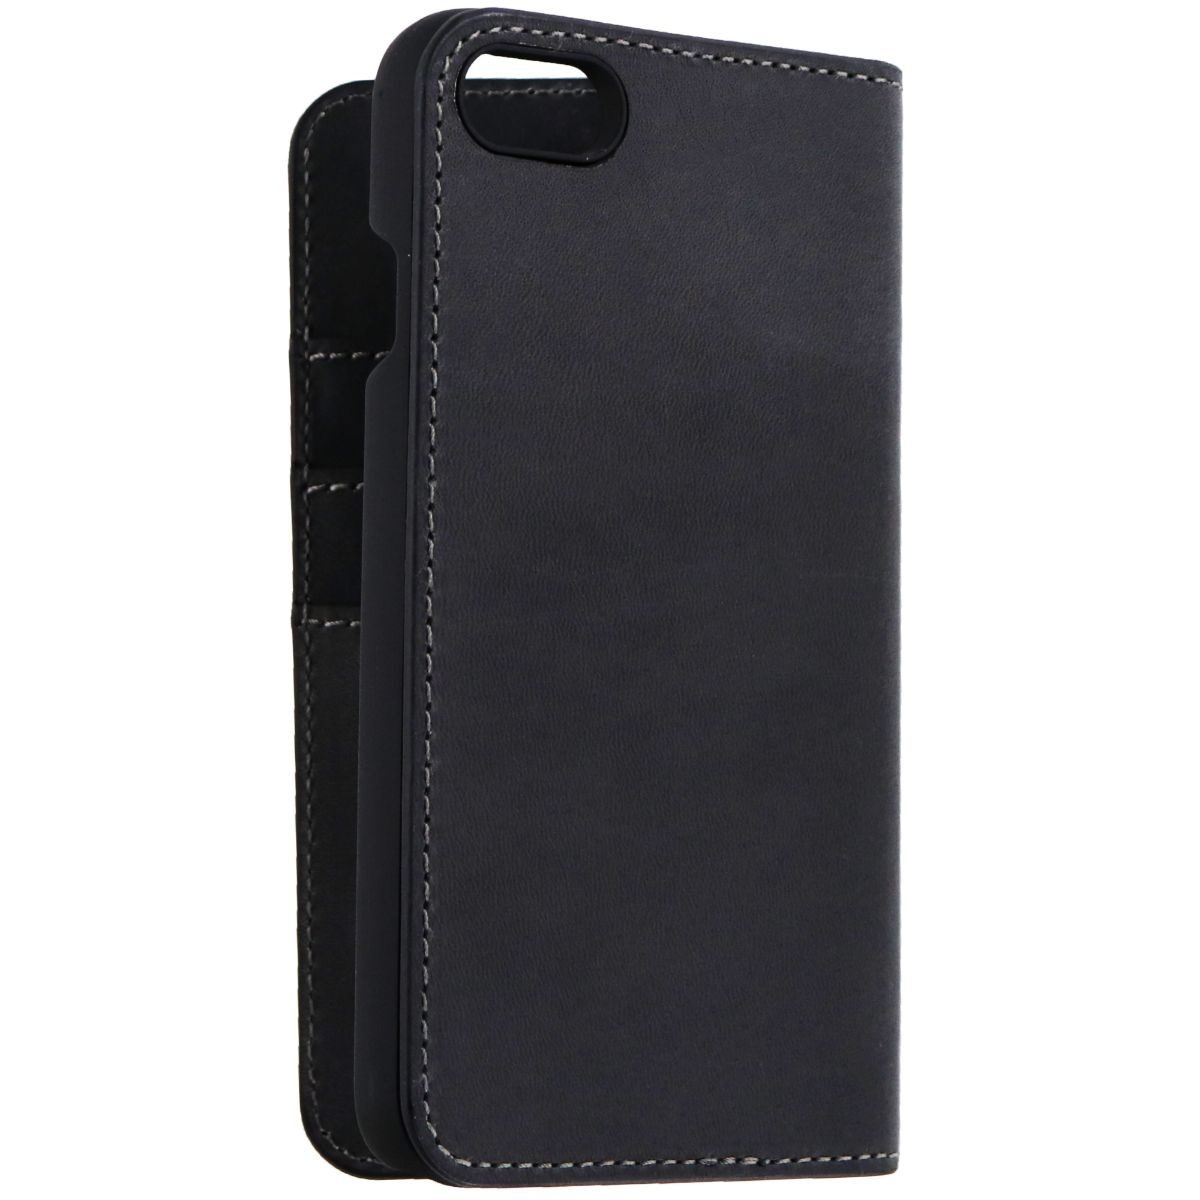 newest e0125 83793 Platinum Genuine Leather Folio Wallet Case for iPhone 8 and 7 ...